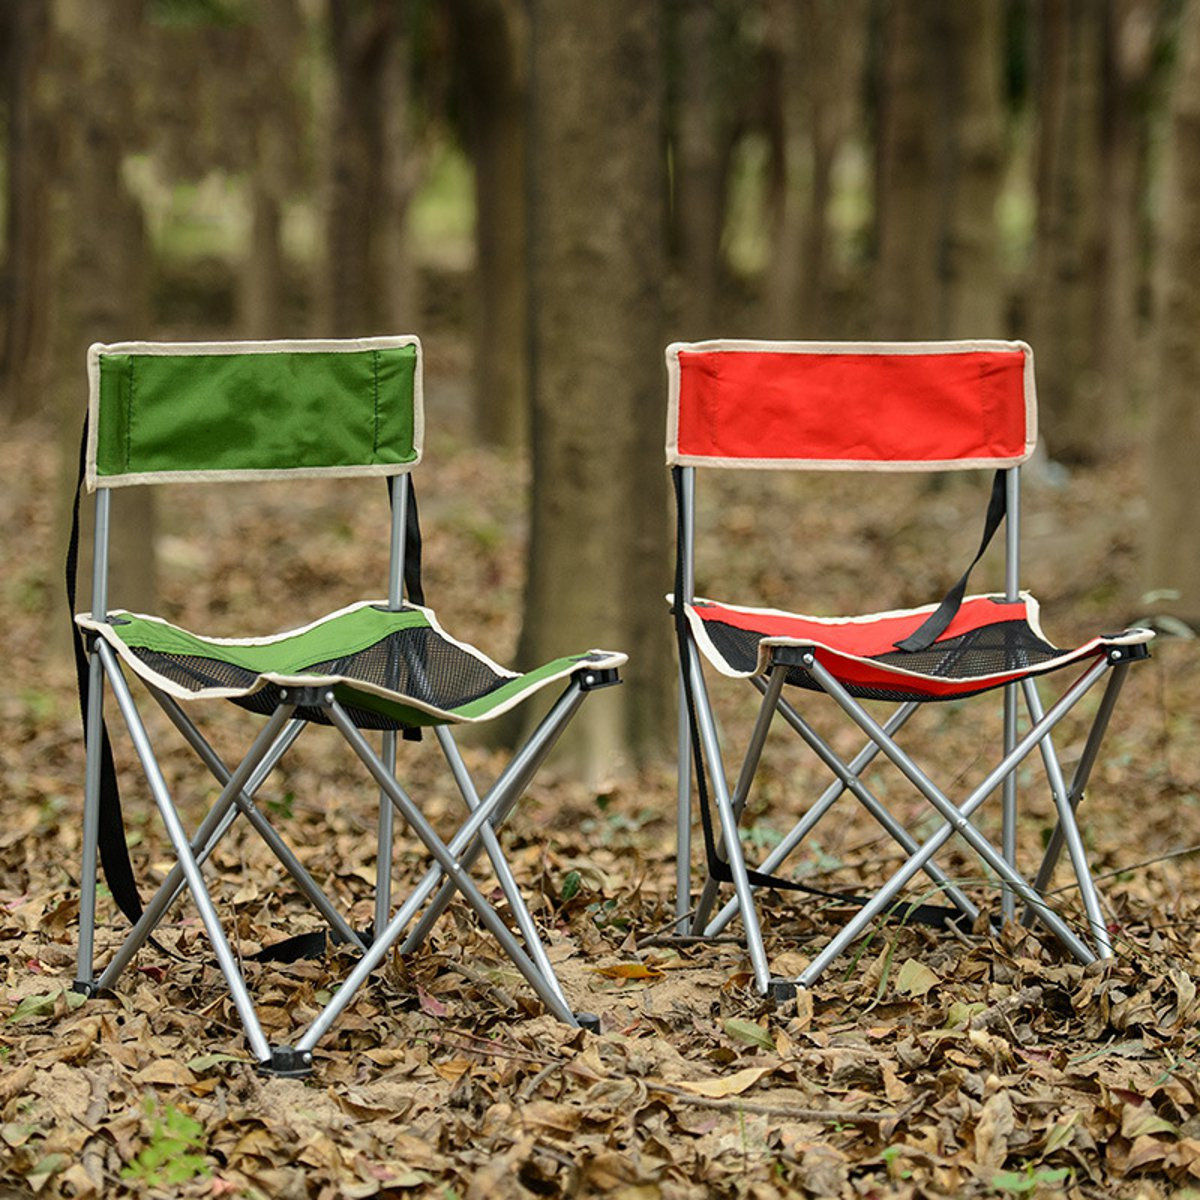 fishing chair accessories for sale dining room seat covers walmart outdooors camping portable folding light weight